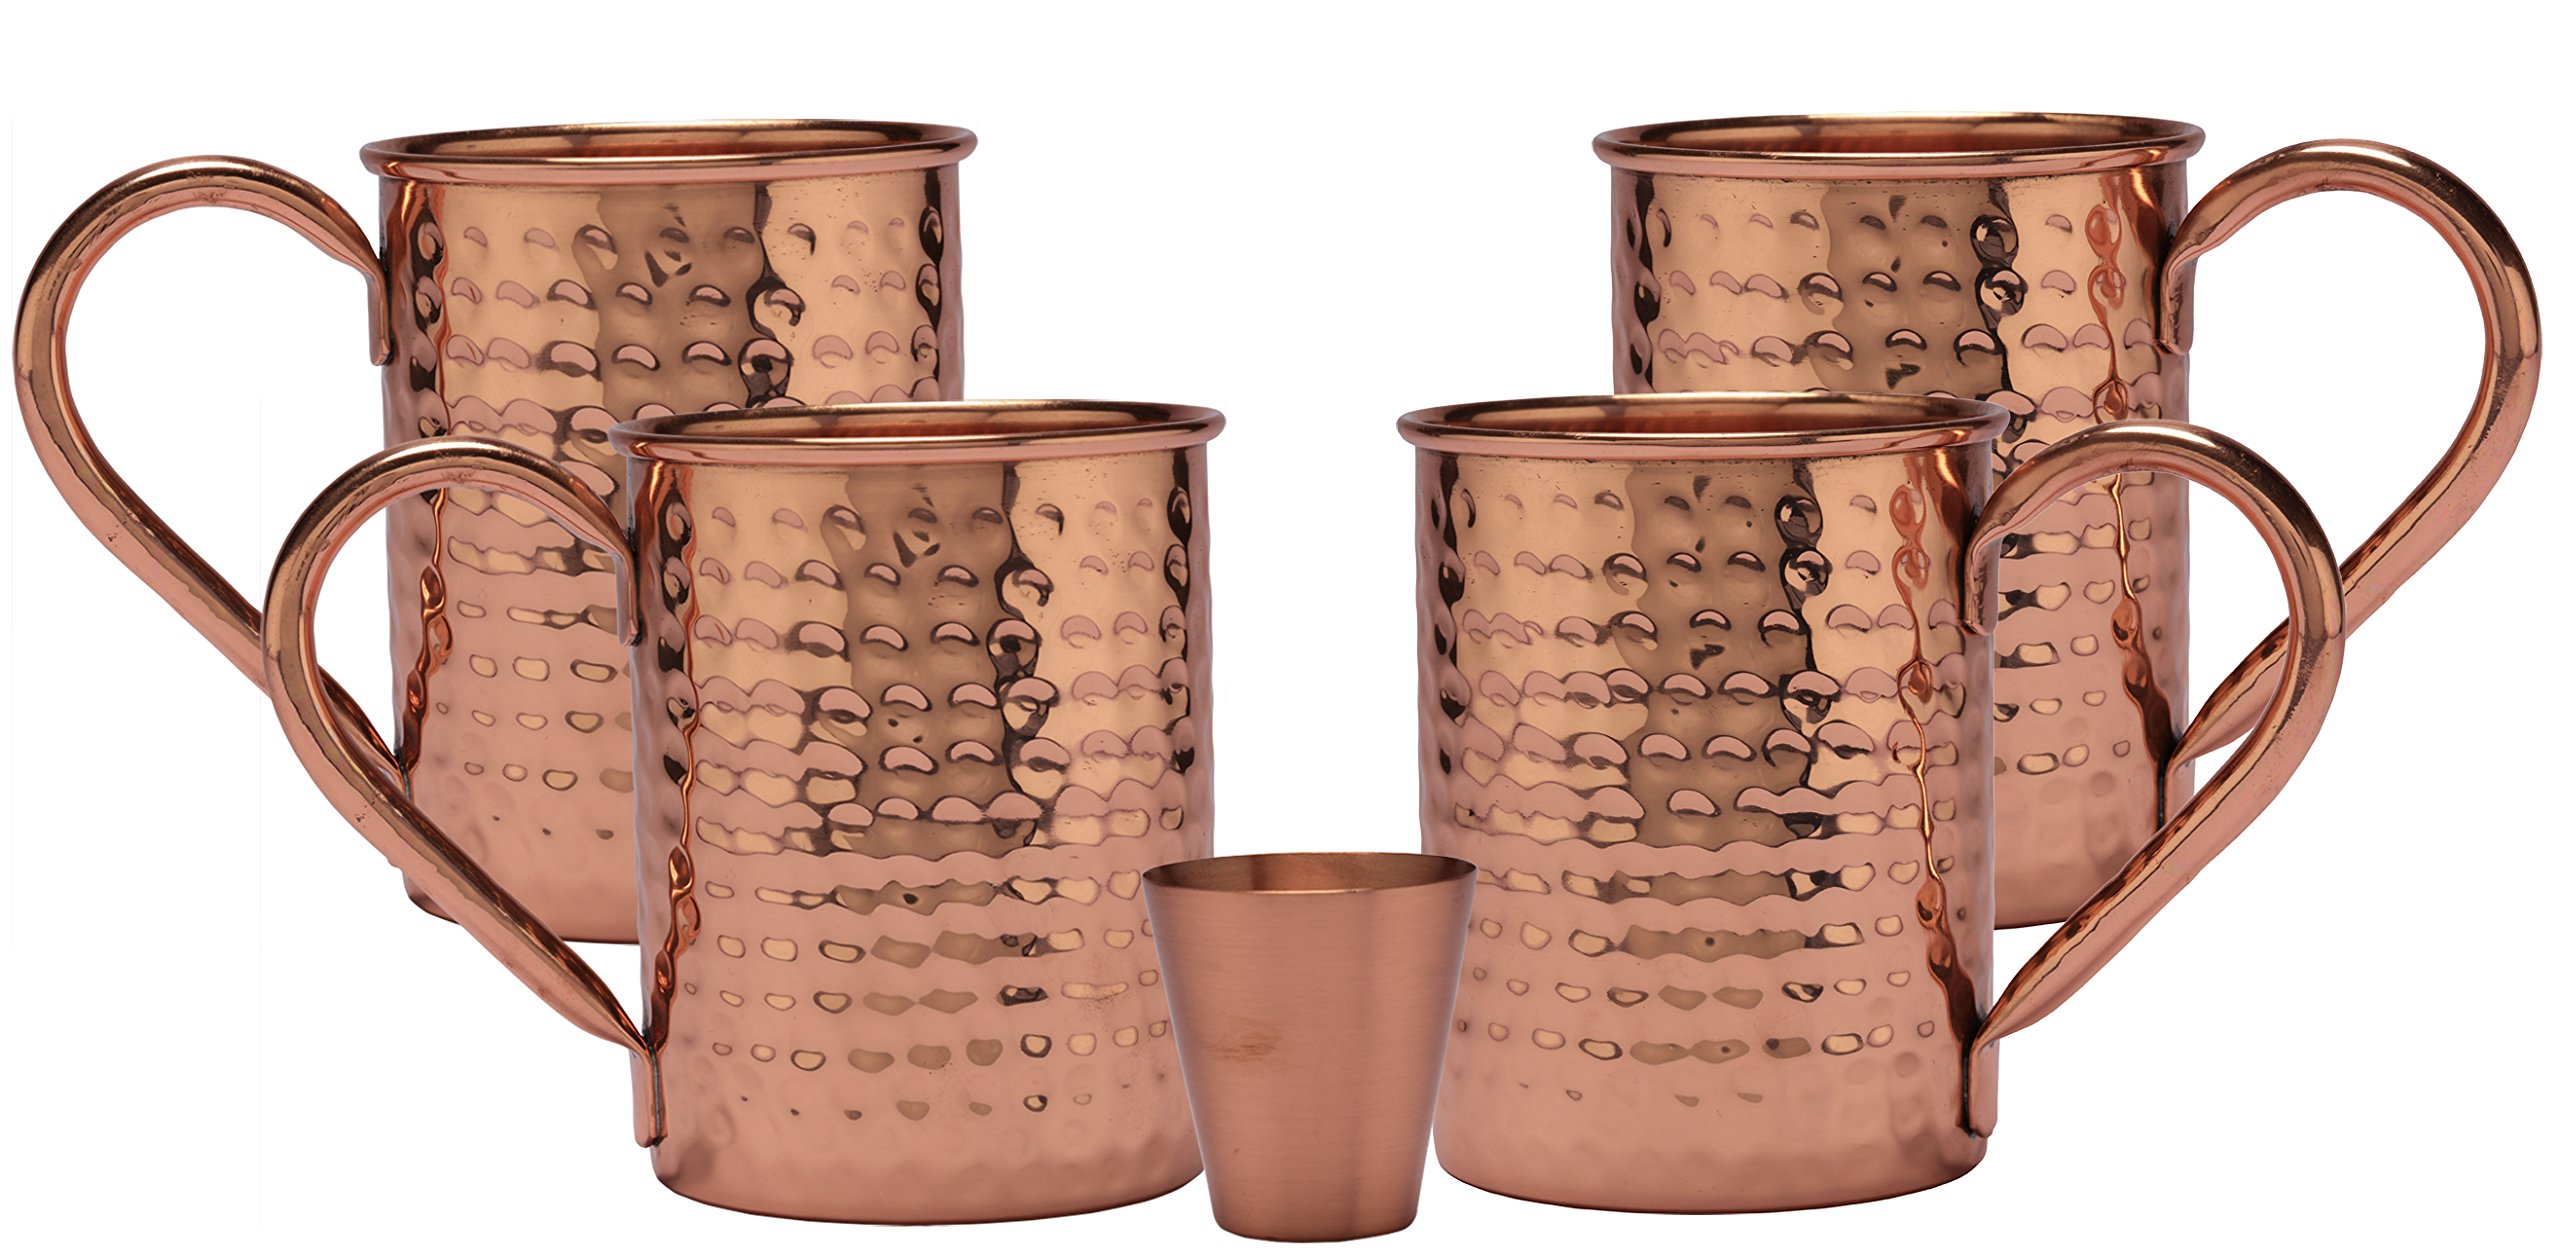 Melange 24 Oz Copper Classic Mug for Moscow Mules, Set of 4 with One Shot Glass - 100% Pure Hammered Copper - Heavy Gauge - No Lining - Includes Free Recipe Card